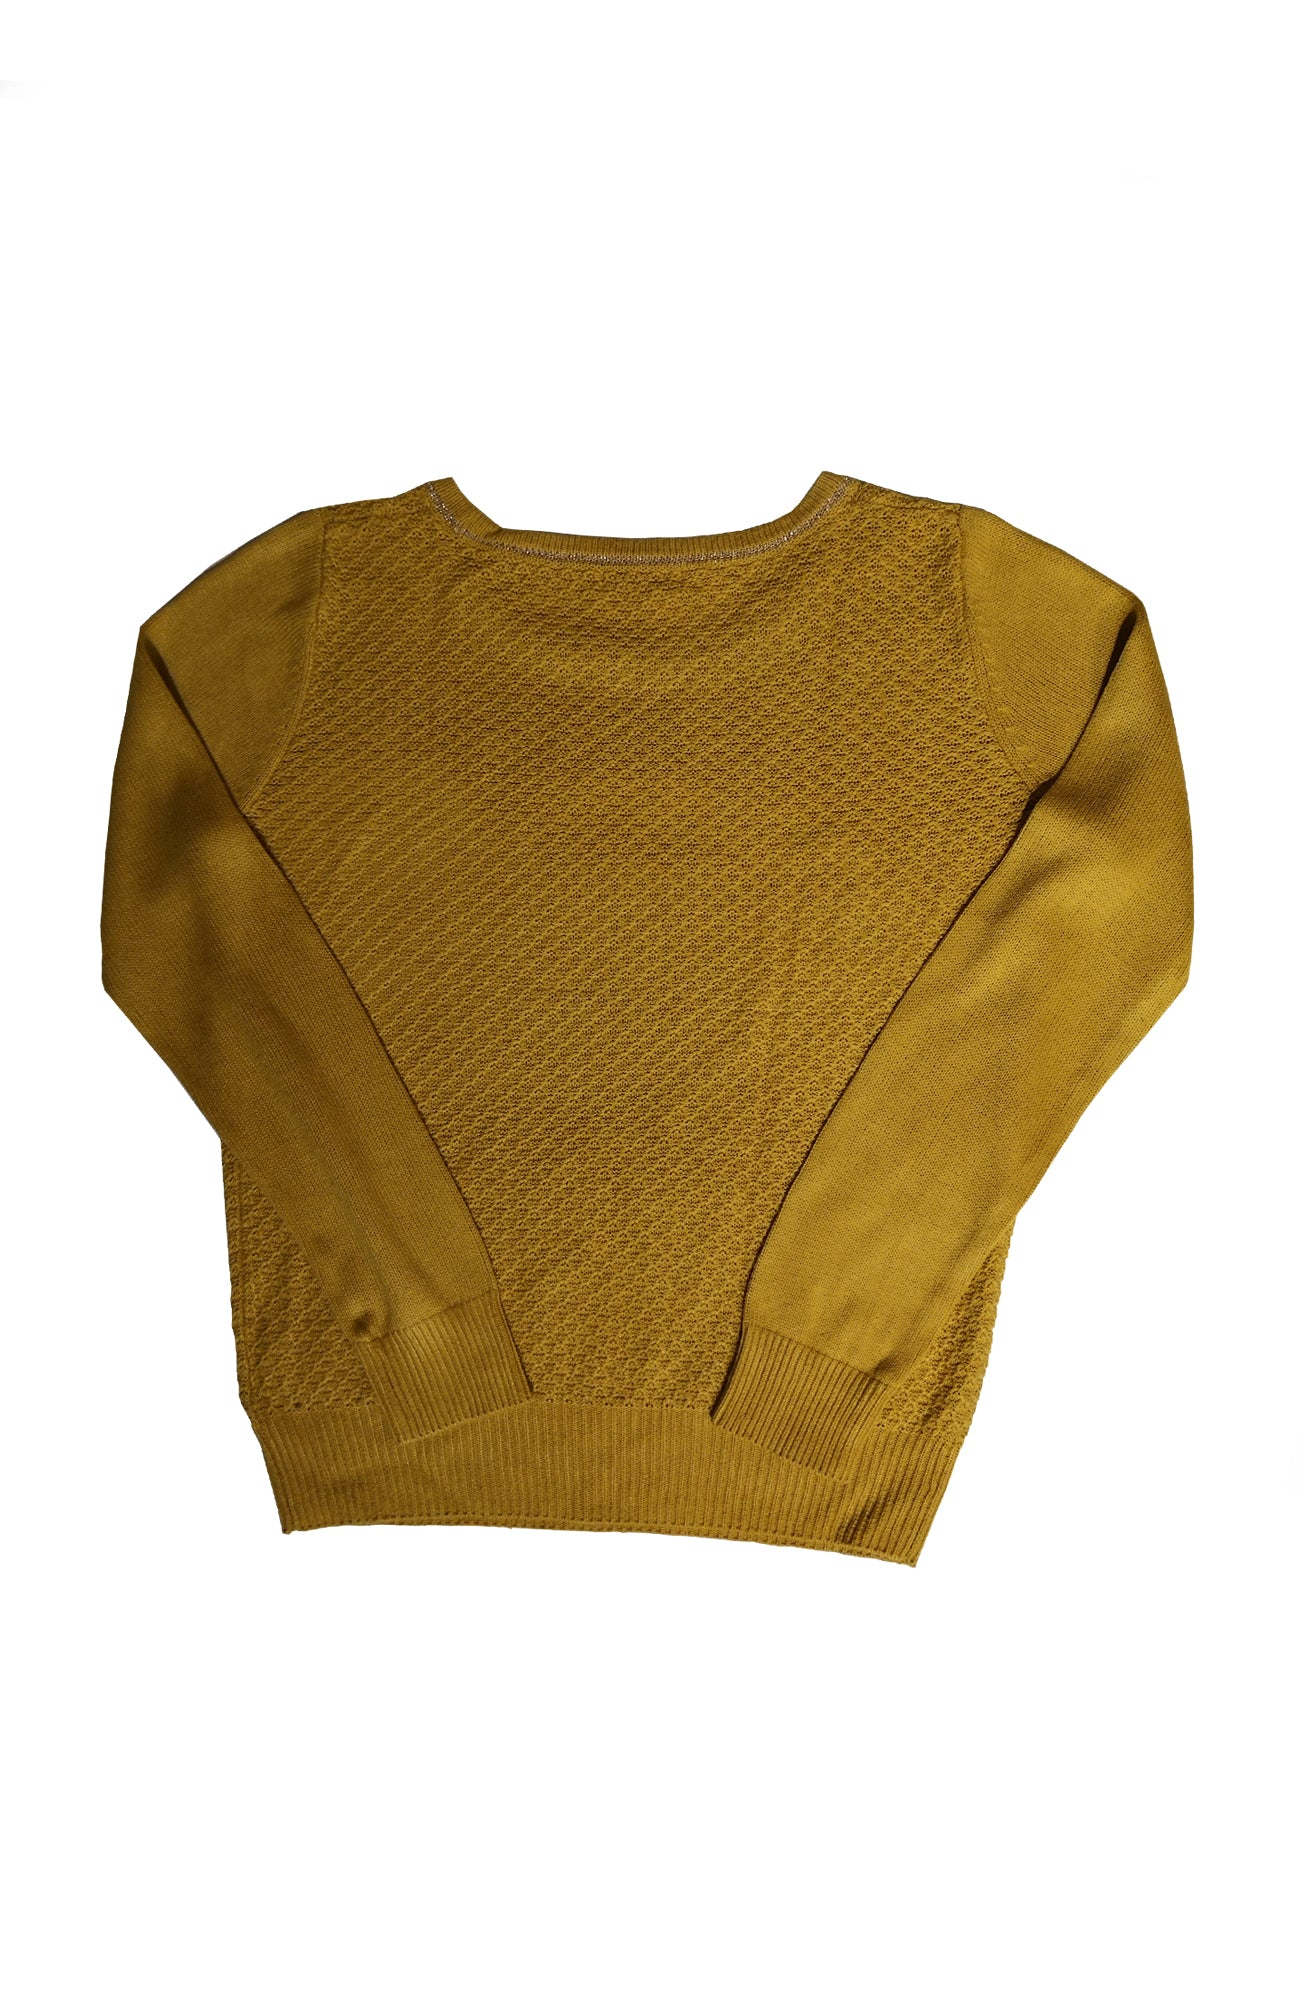 Index Mustard Yellow Long Sleeve Top (M)